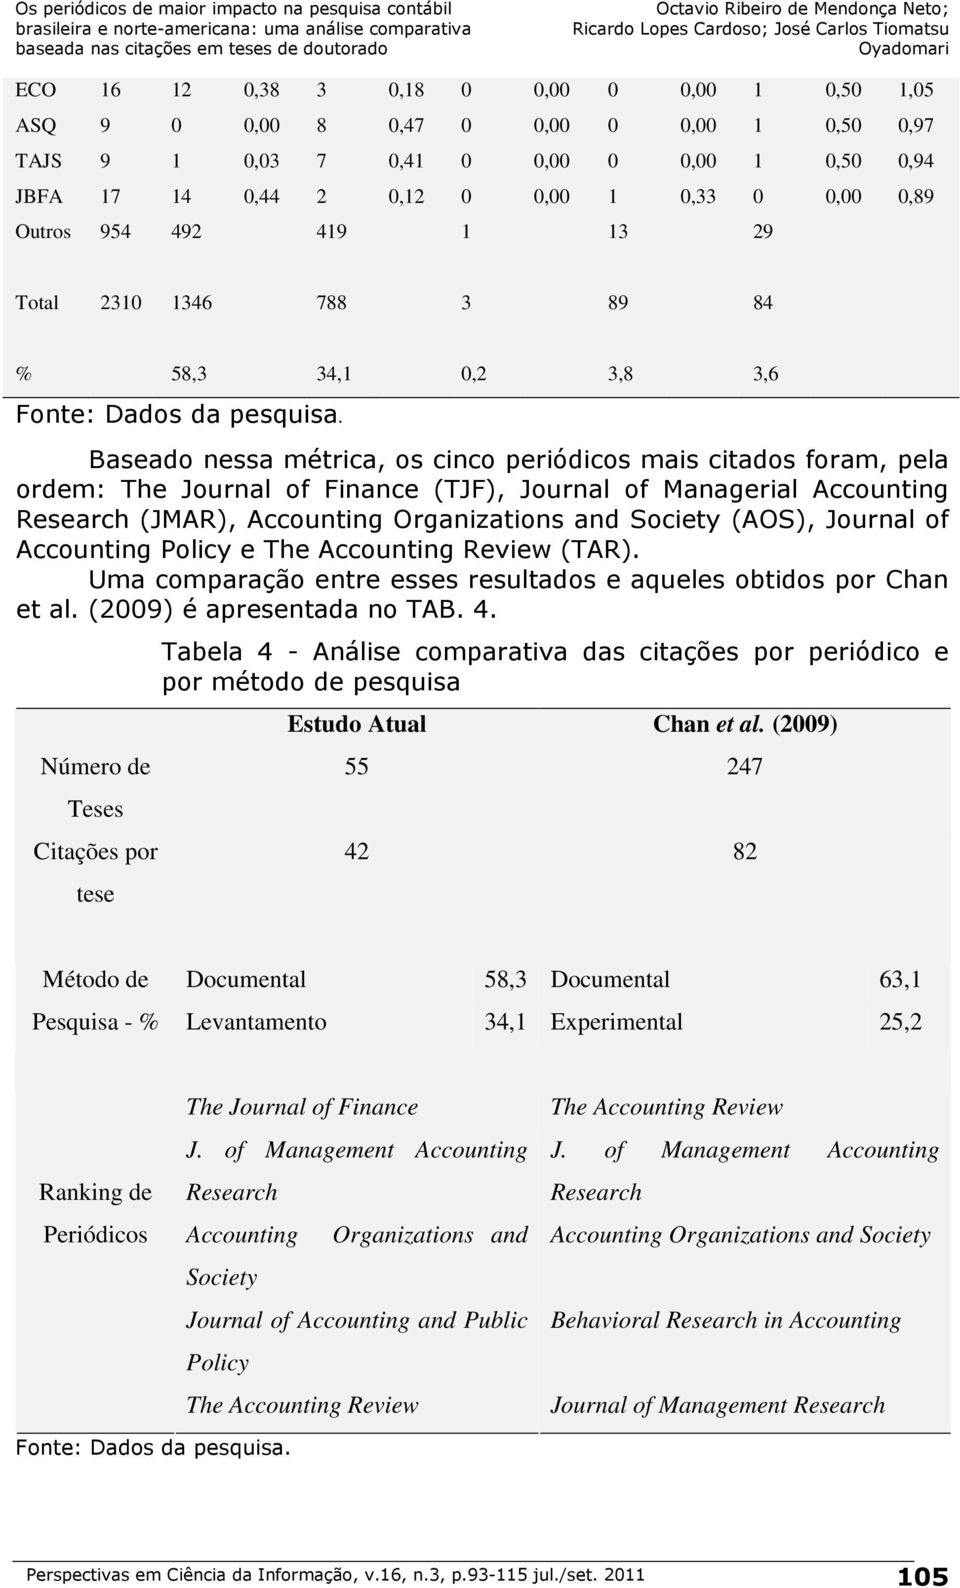 Baseado nessa métrica, os cinco periódicos mais citados foram, pela ordem: The Journal of Finance (TJF), Journal of Managerial Accounting Research (JMAR), Accounting Organizations and Society (AOS),